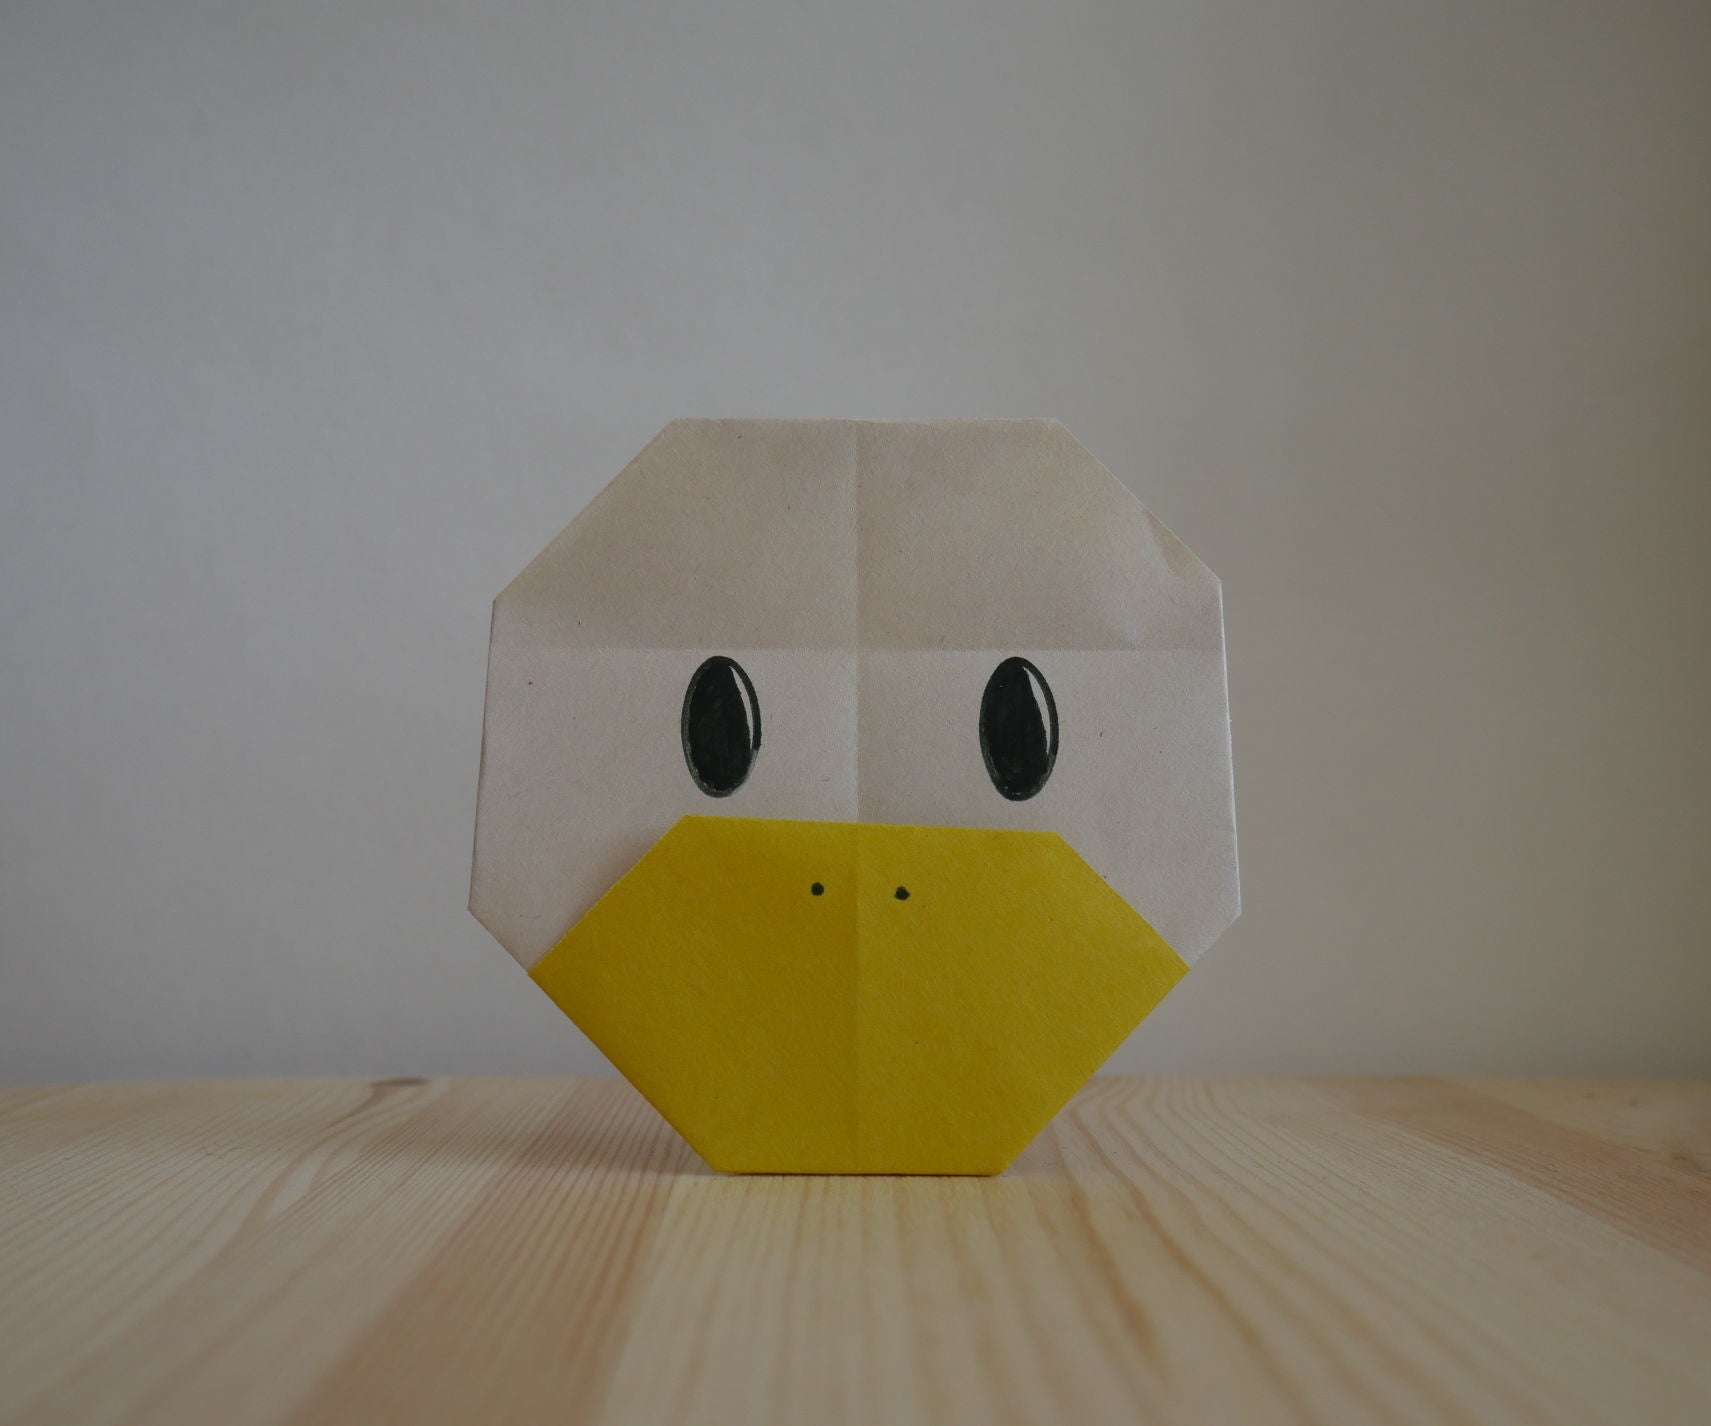 easy crafts ideas to make: origami duck tutorial | 1426x1711